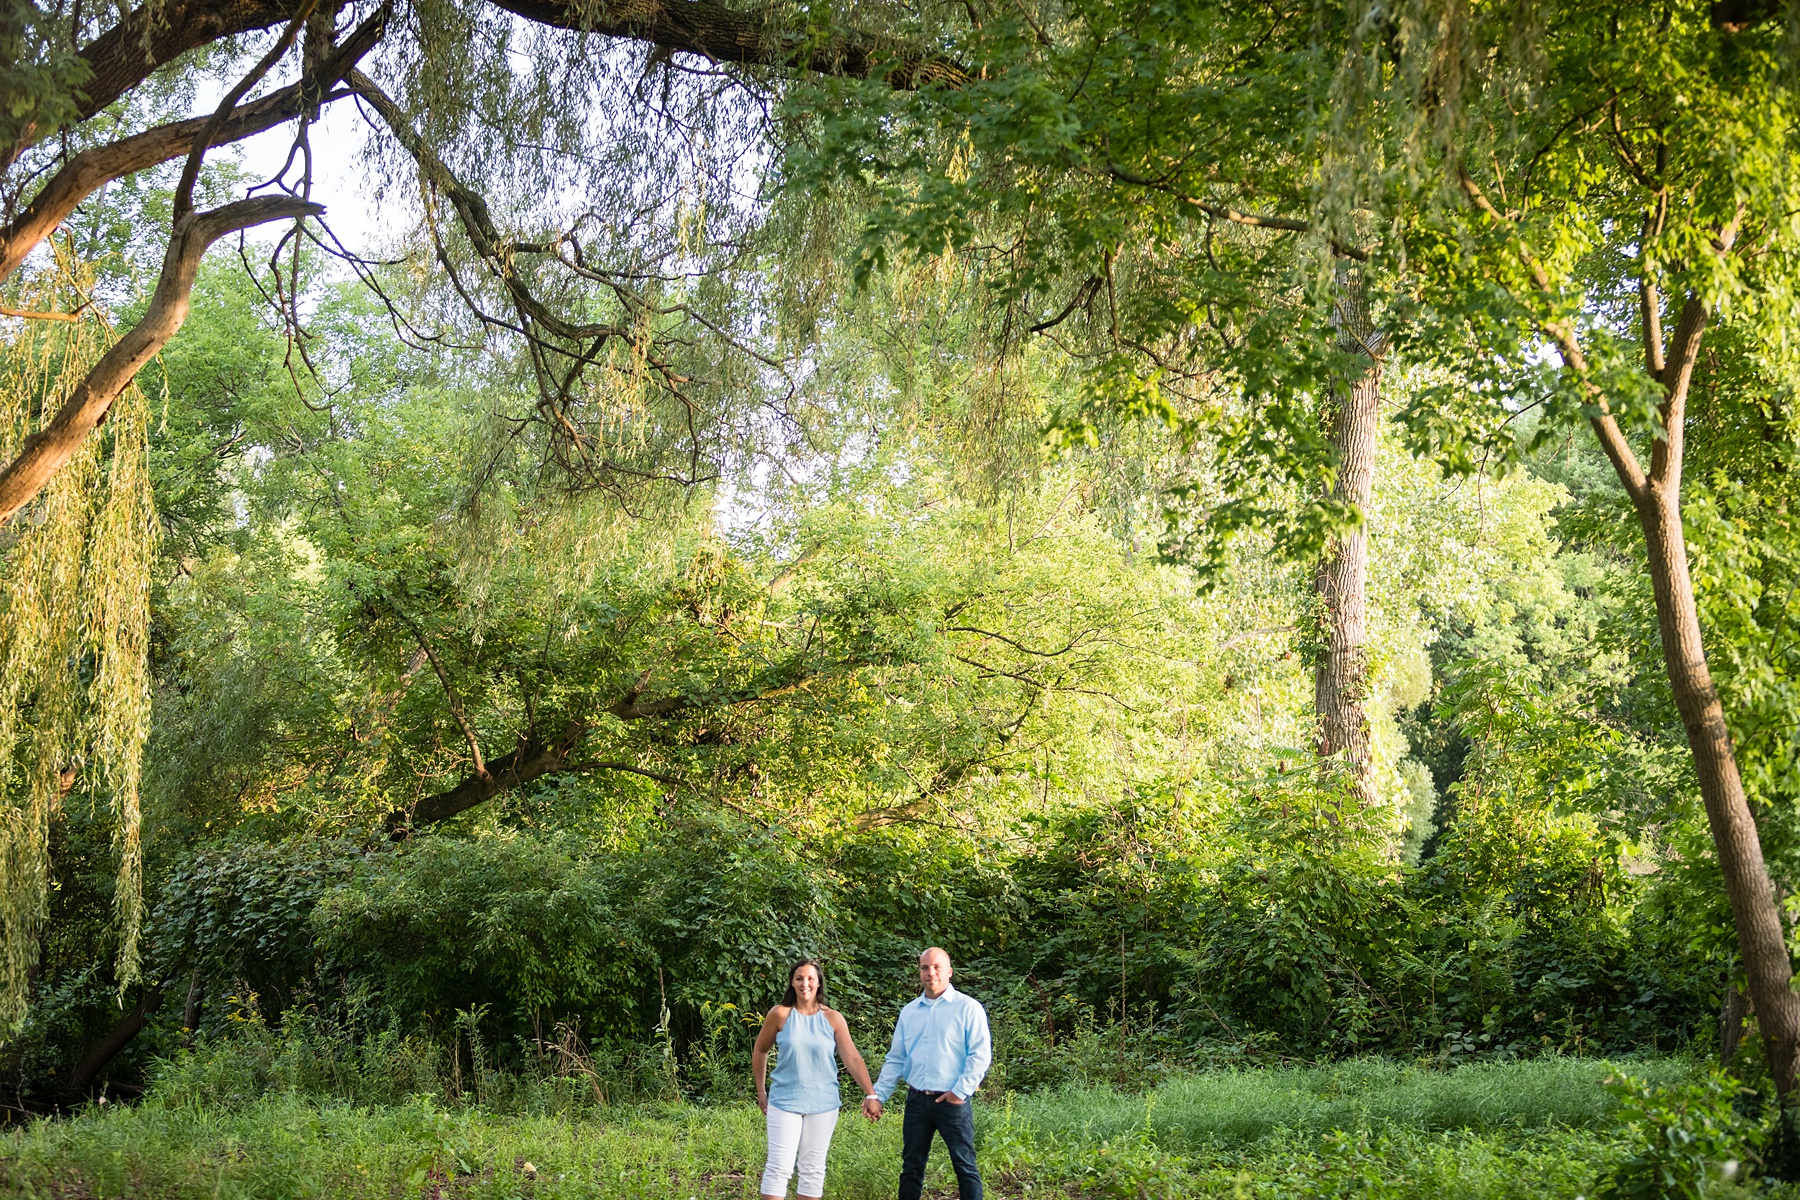 Brandon_Shafer_Photography_Danielle_Matt_Apple_Orchard_Engagement_Photos_0025.jpg